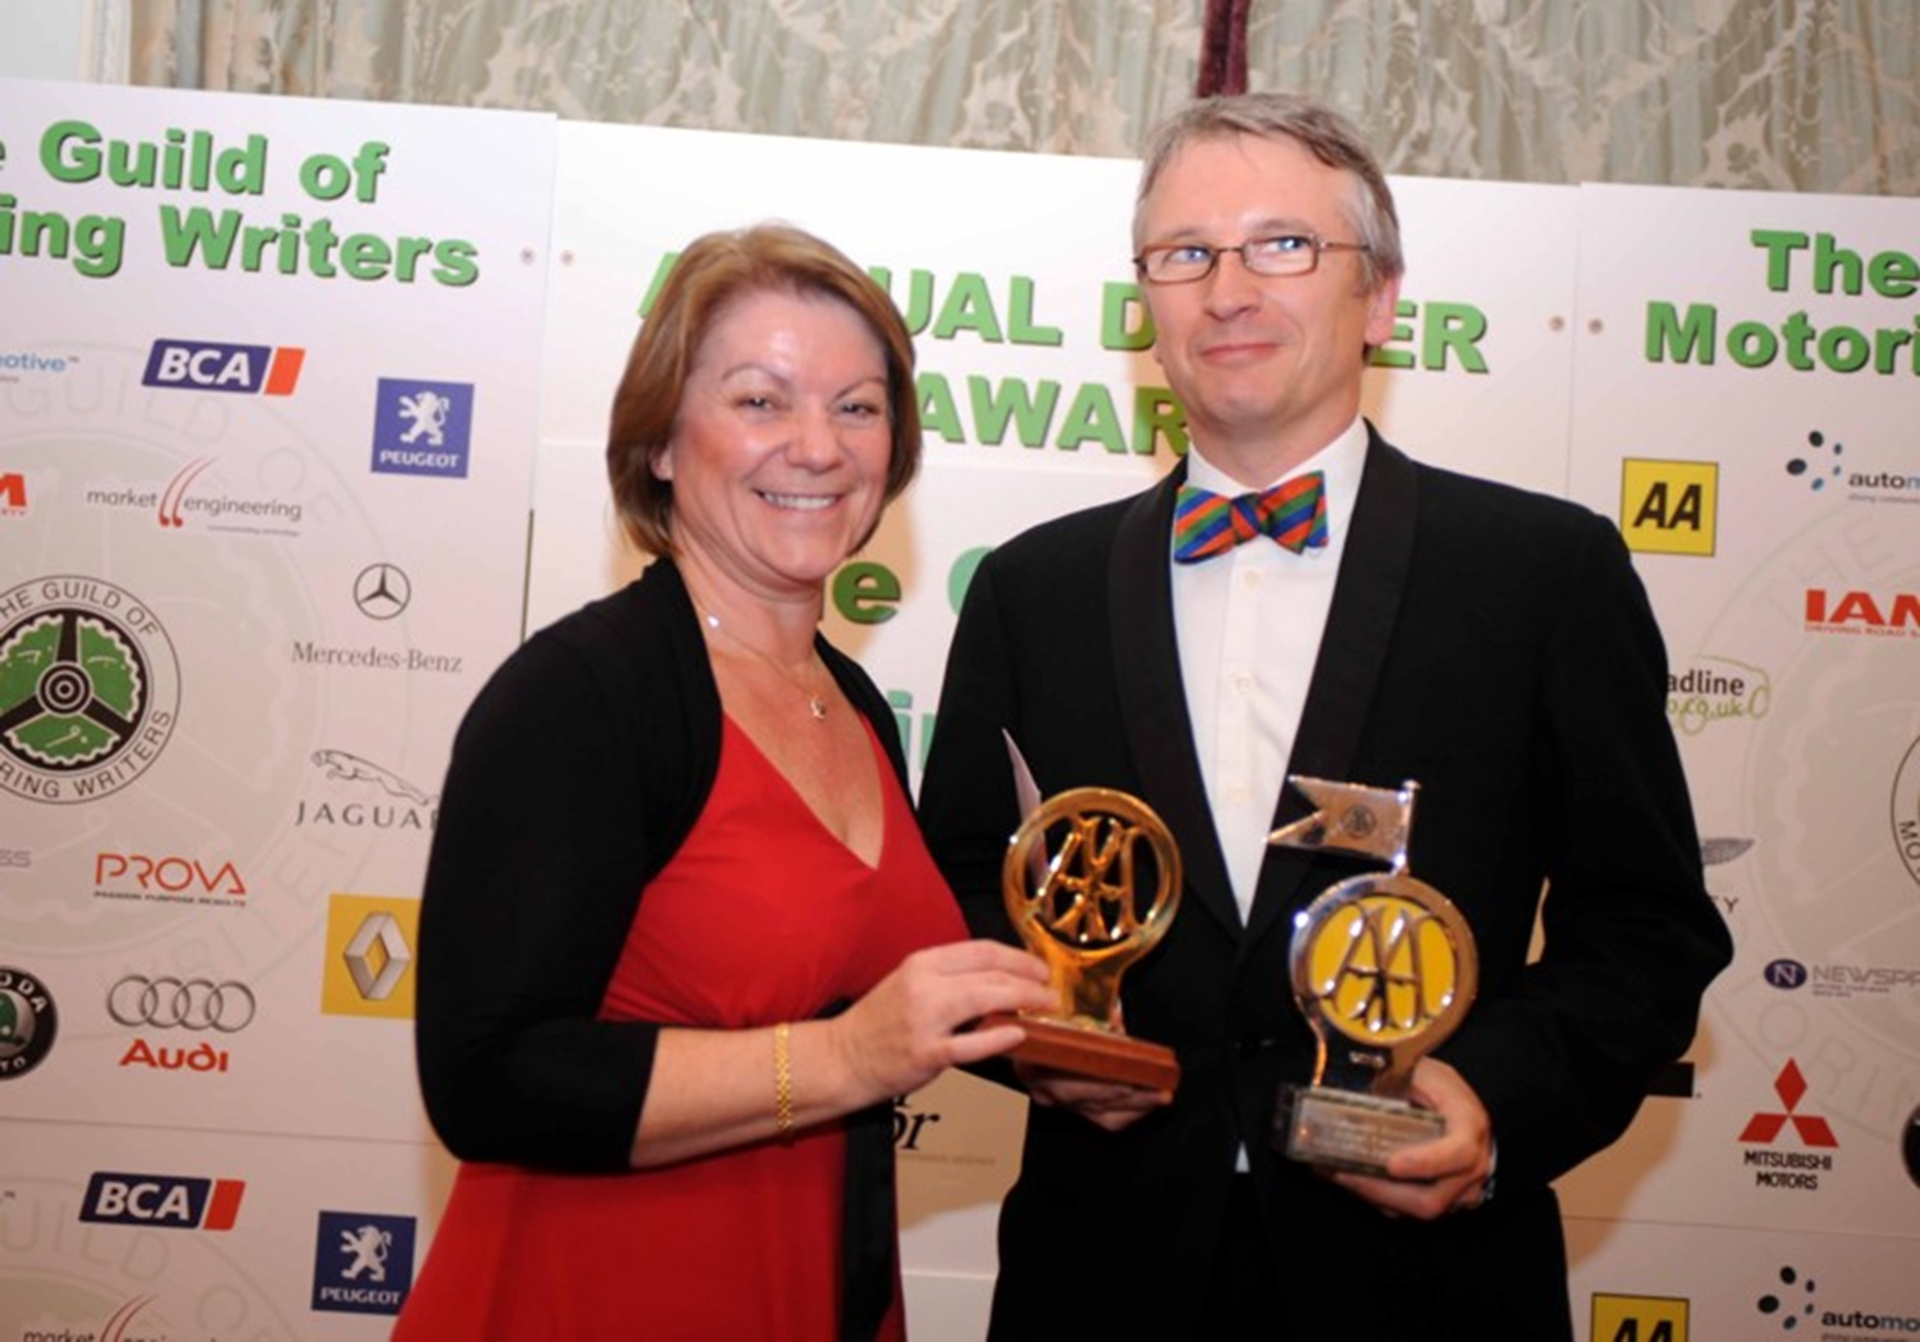 The Guild Of Motoring Writers Awards